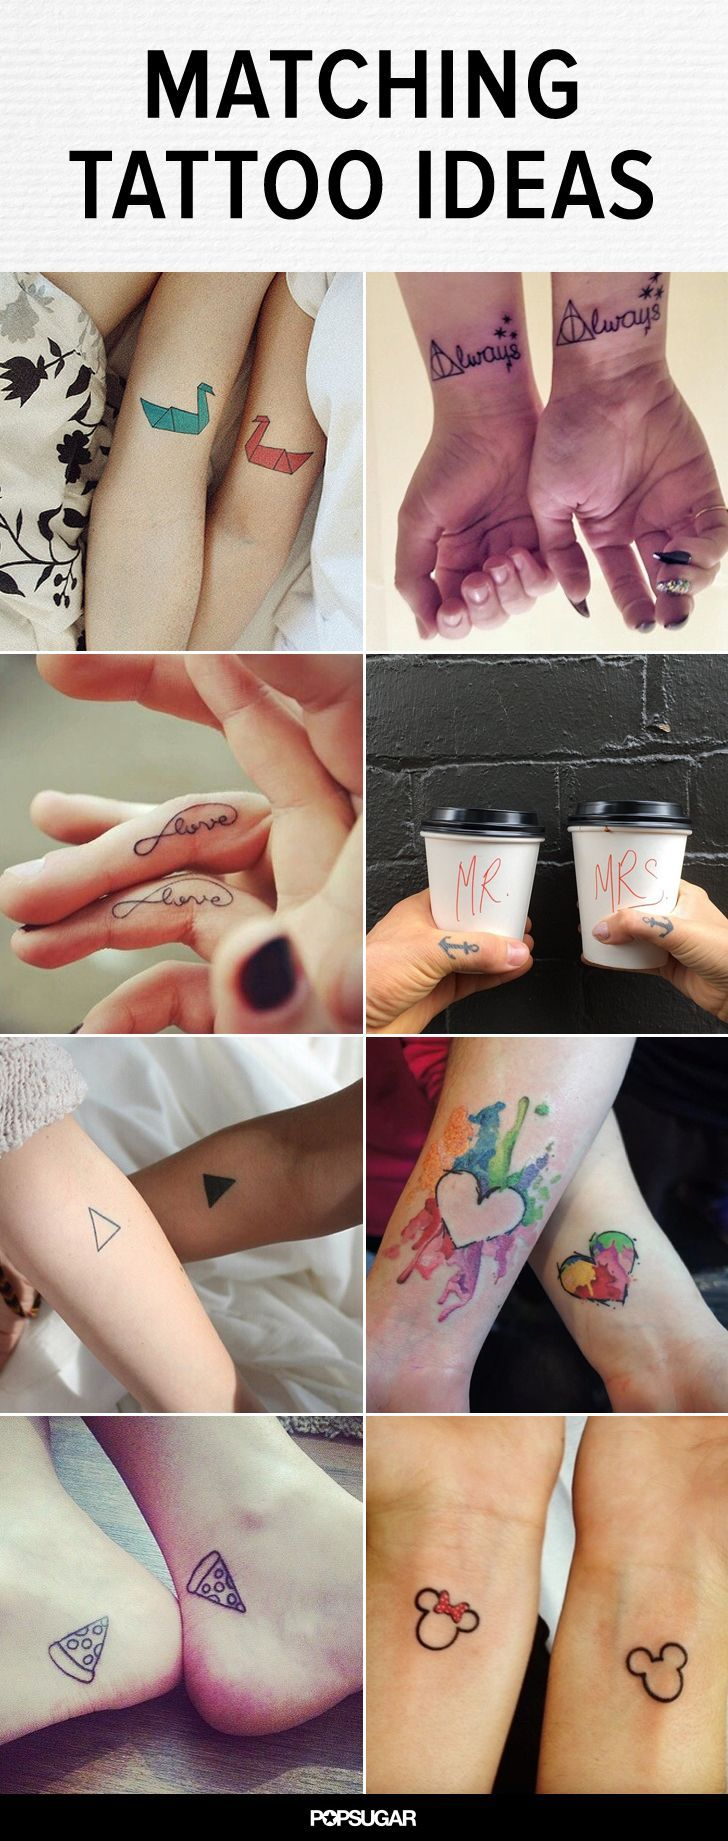 9 Celebrities With Matching Tattoos - Celebrities That Got ...